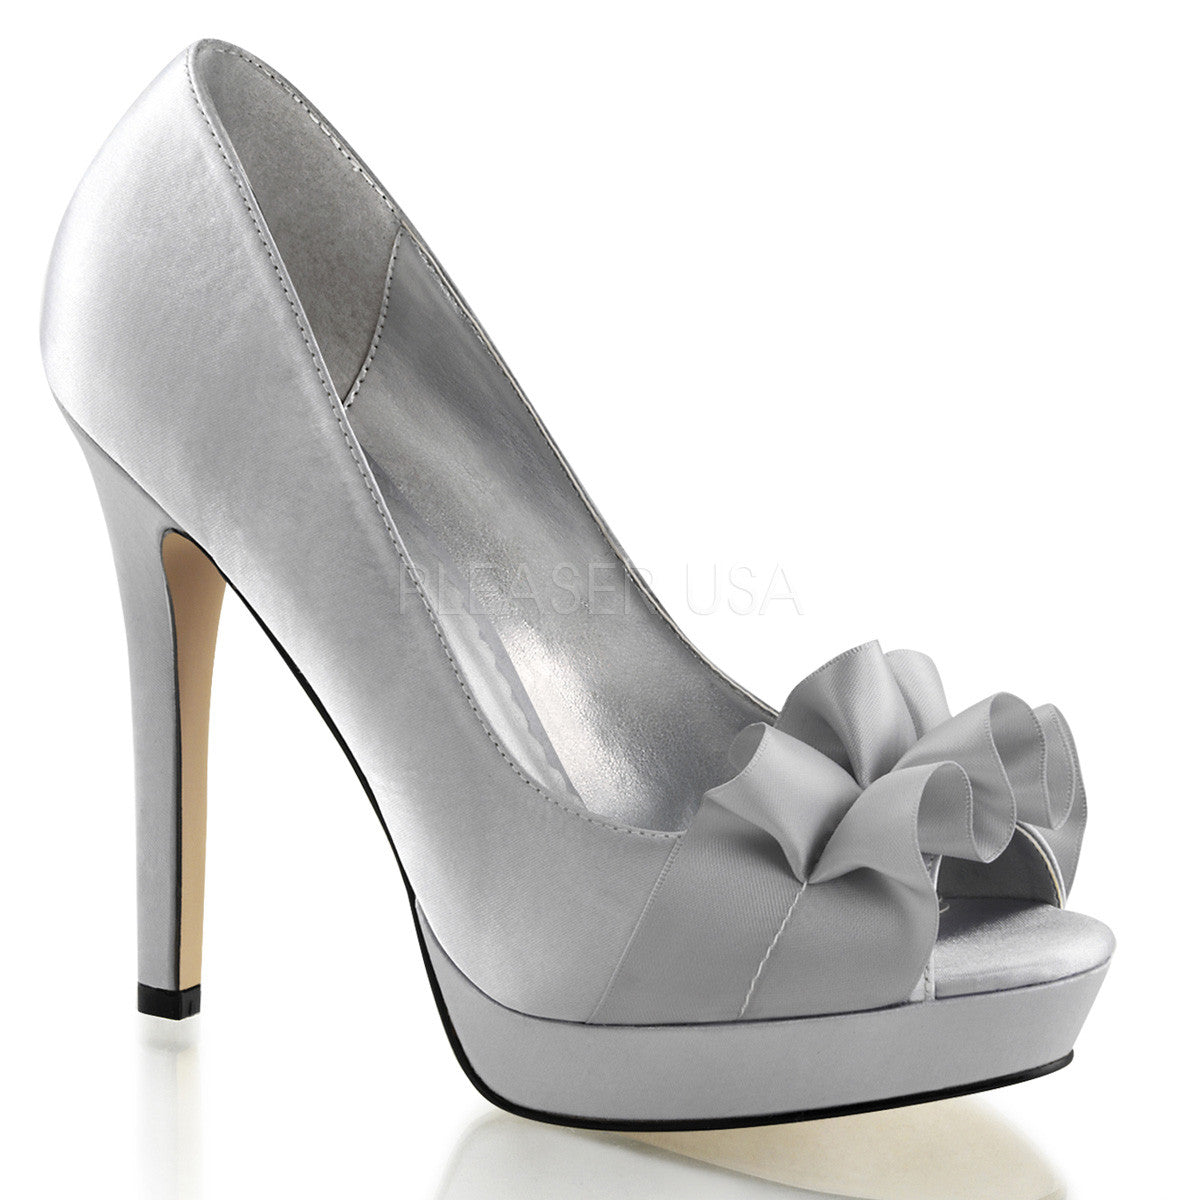 FABULICIOUS LUMINA-42 Silver Satin Peep Toe Pumps - Shoecup.com